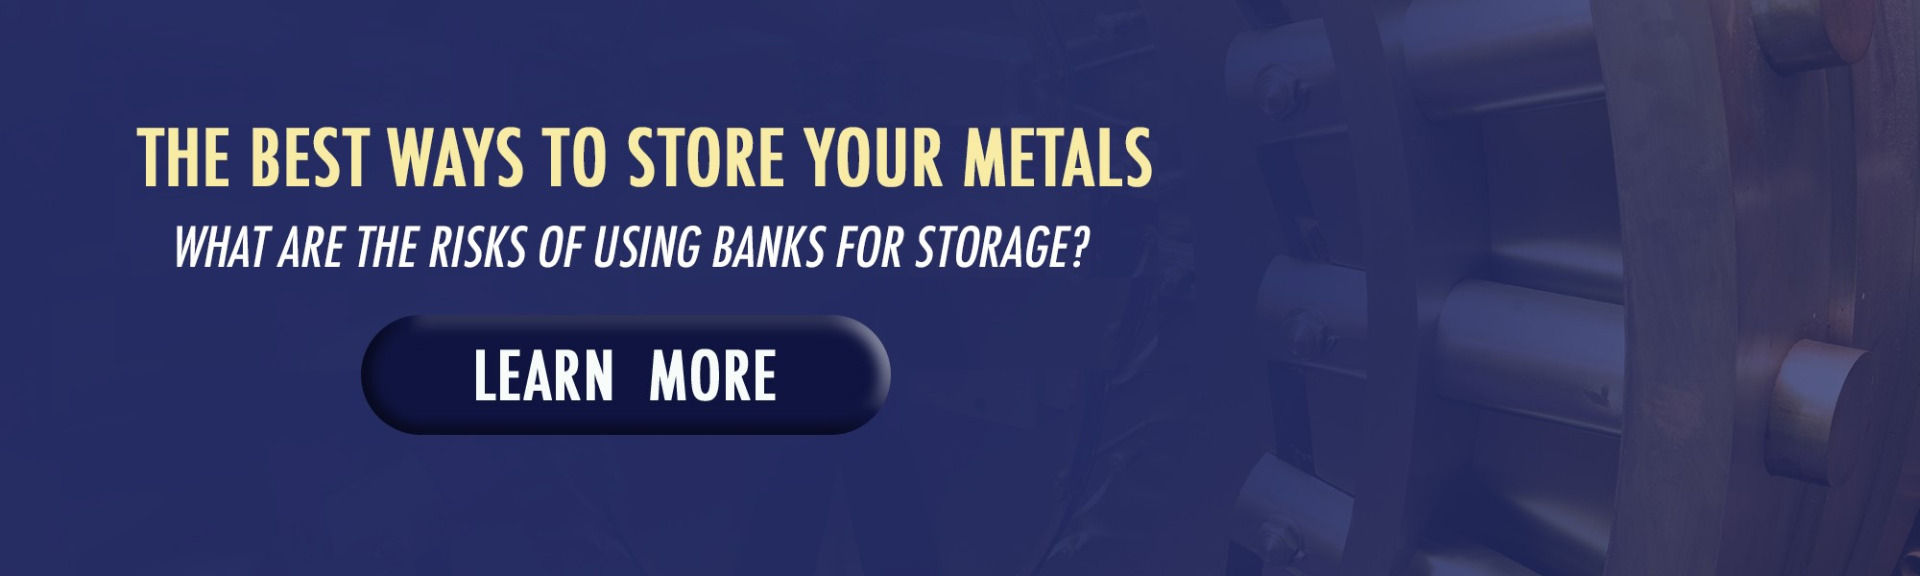 The Best Way To Store Your Metals